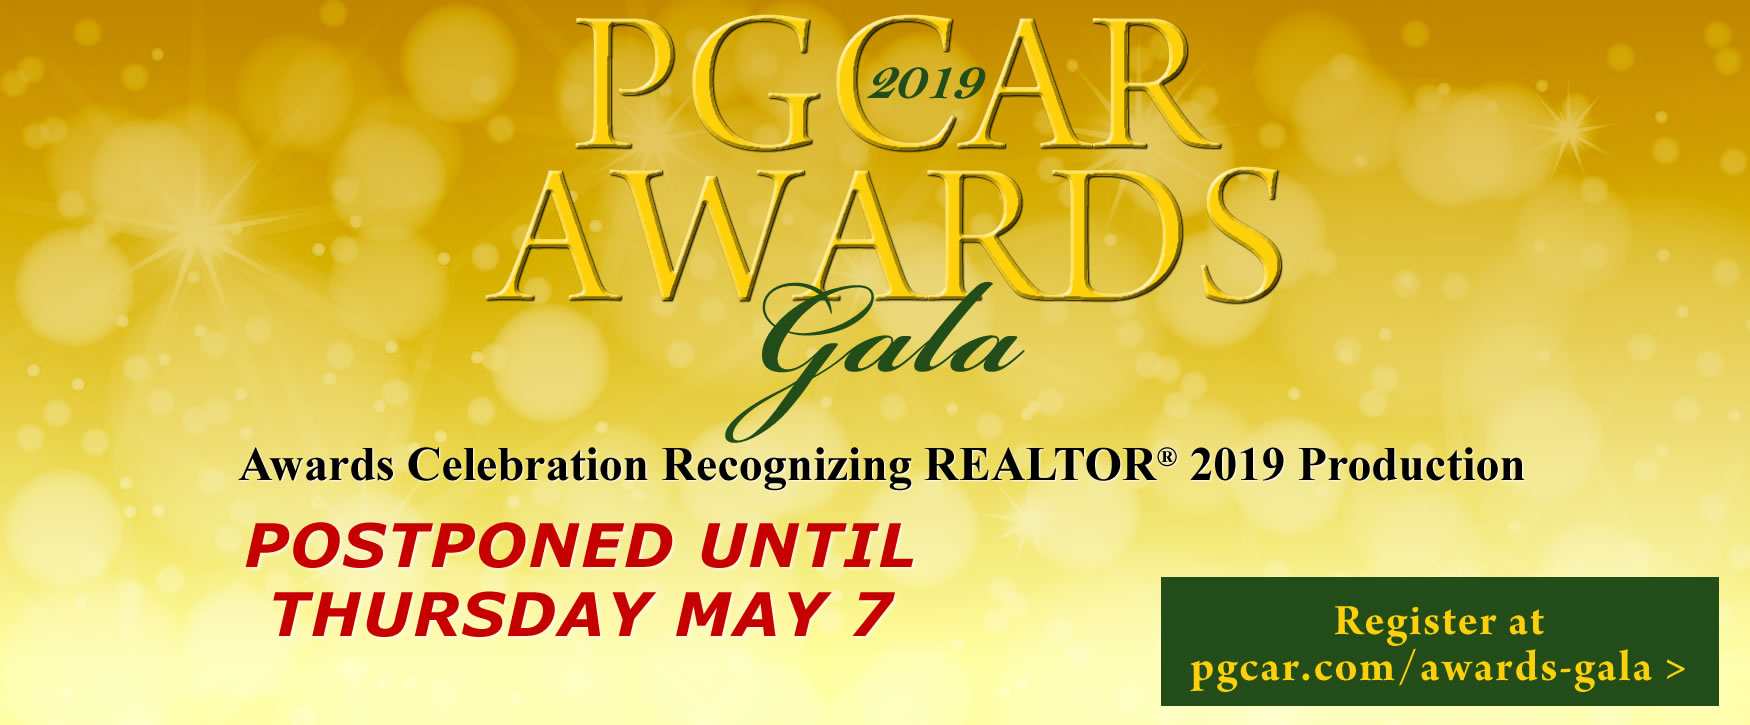 Celebrate at the 2019 Awards Gala